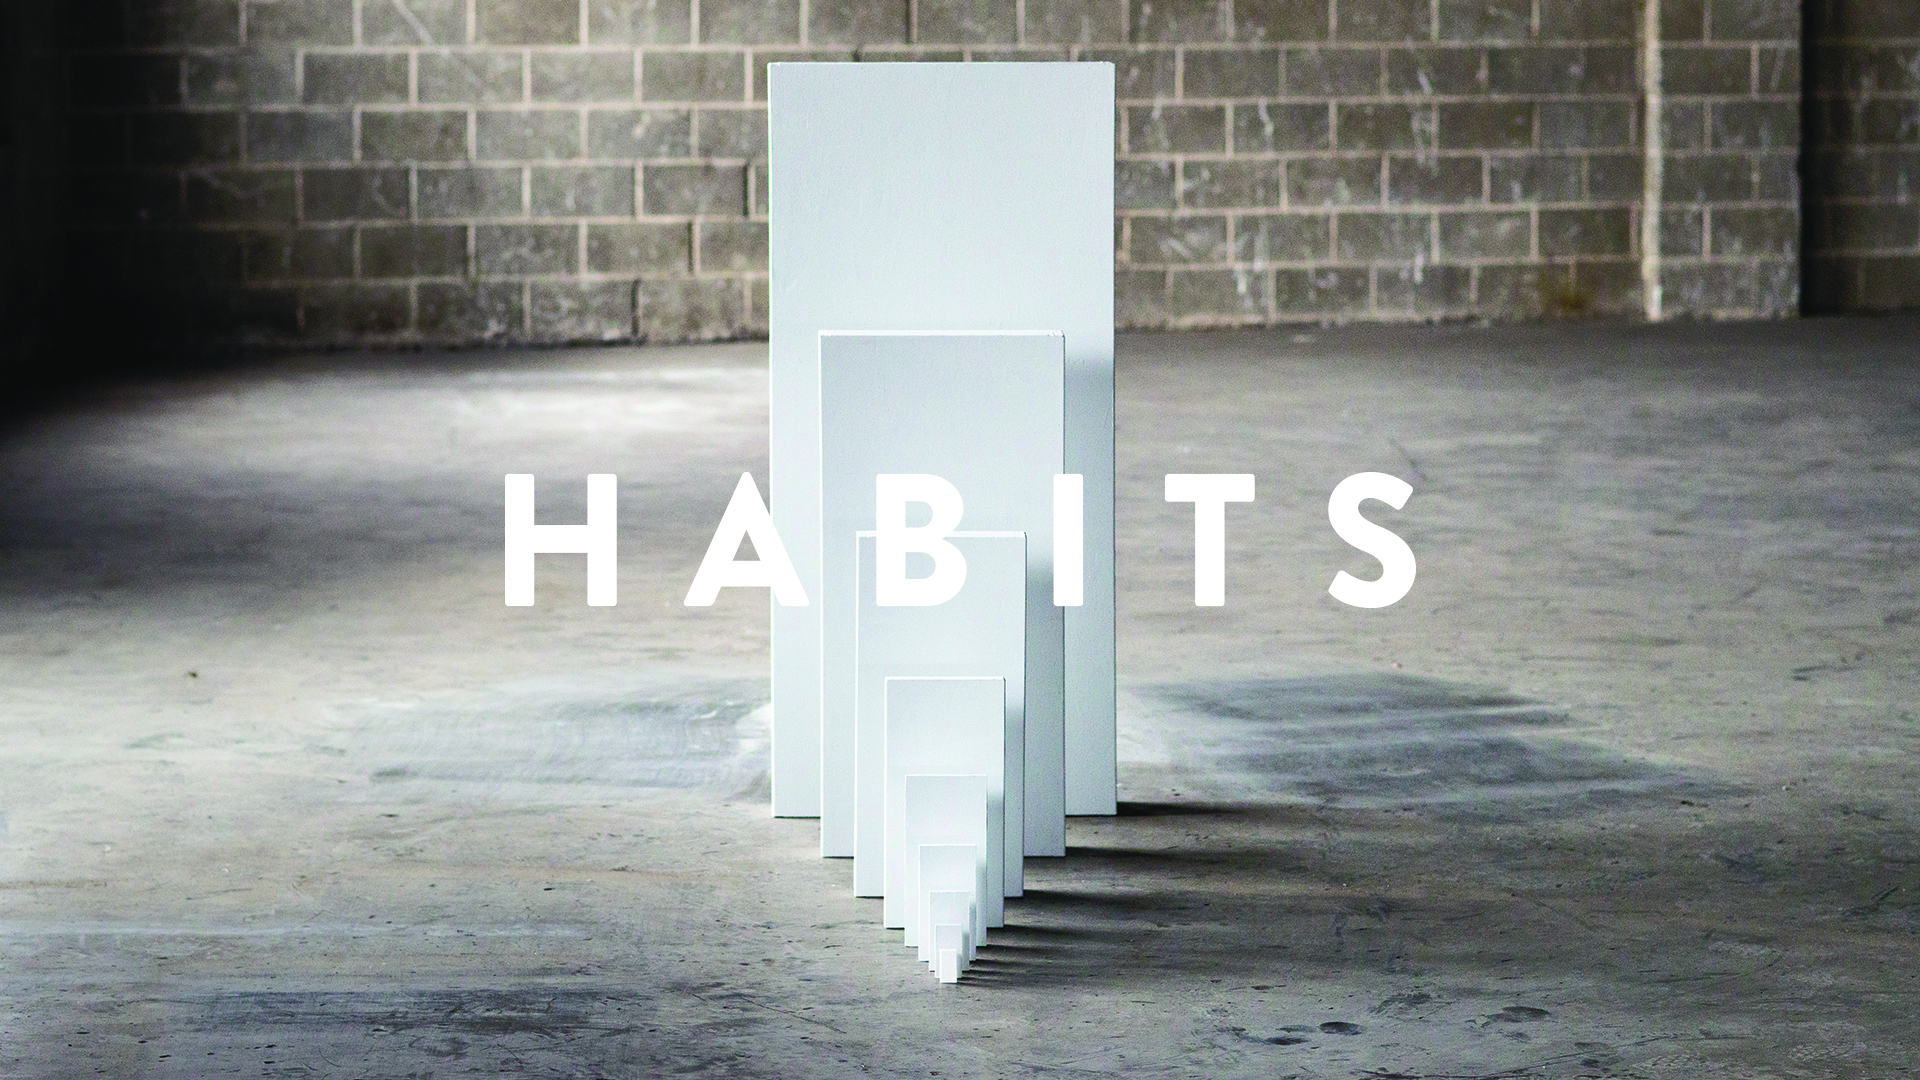 Habits_Artwork.jpg